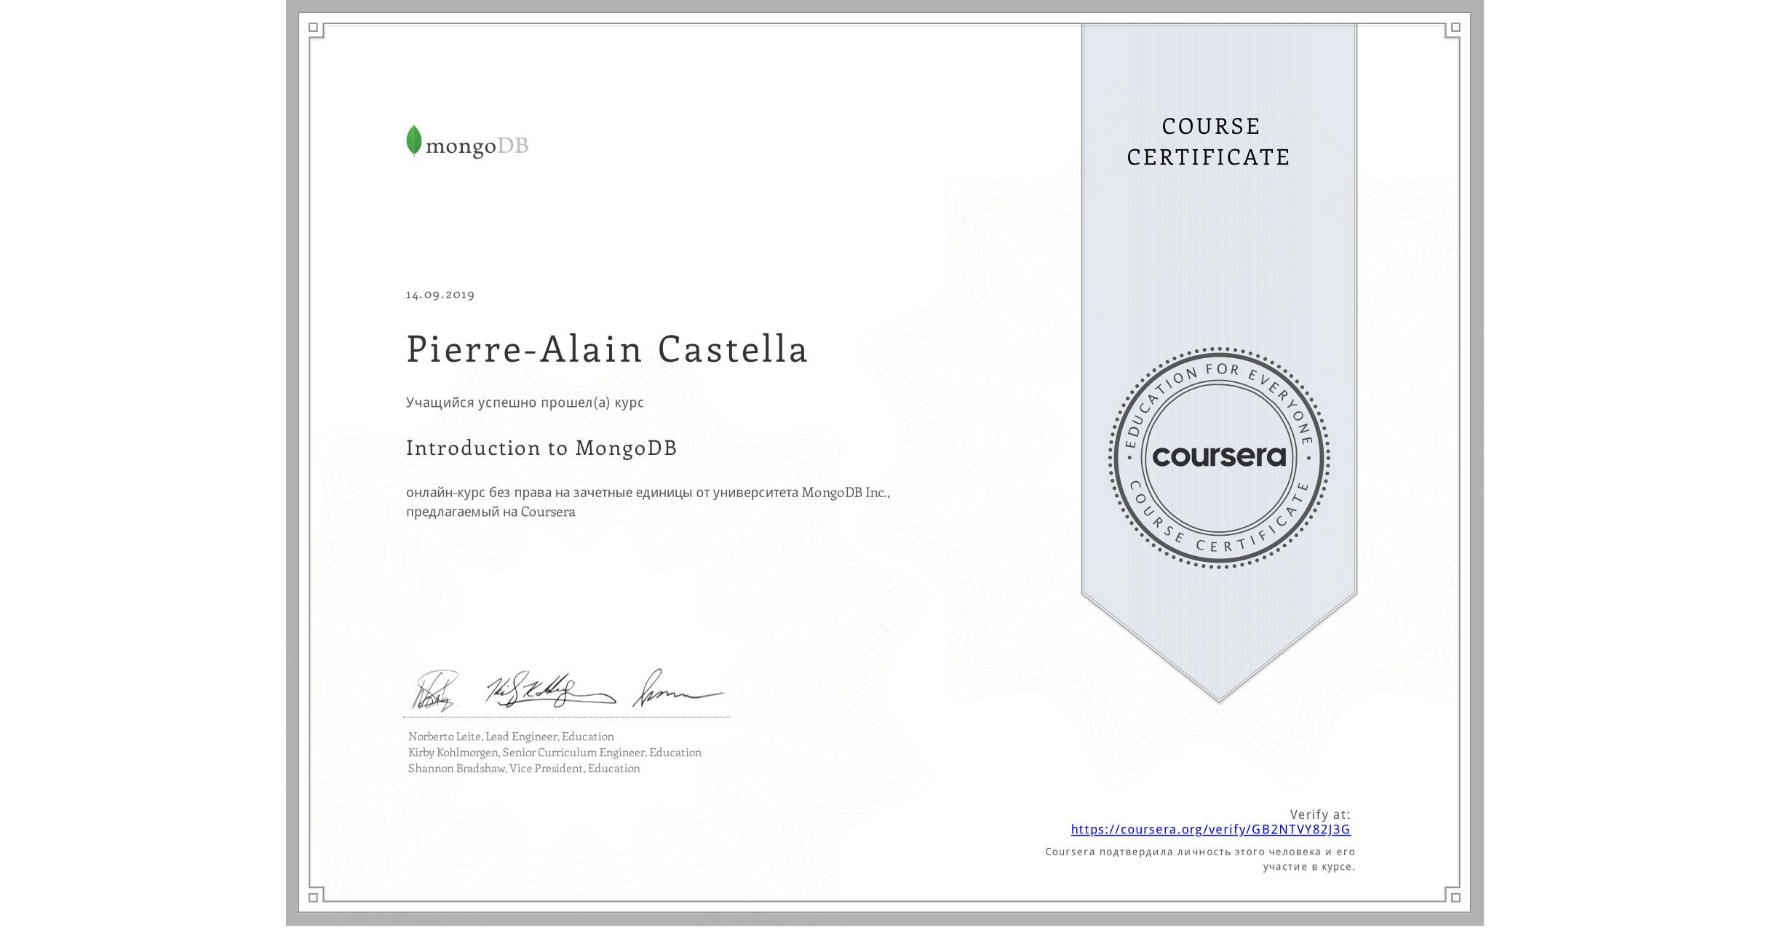 View certificate for Pierre-Alain Castella, Introduction to MongoDB, an online non-credit course authorized by MongoDB Inc. and offered through Coursera